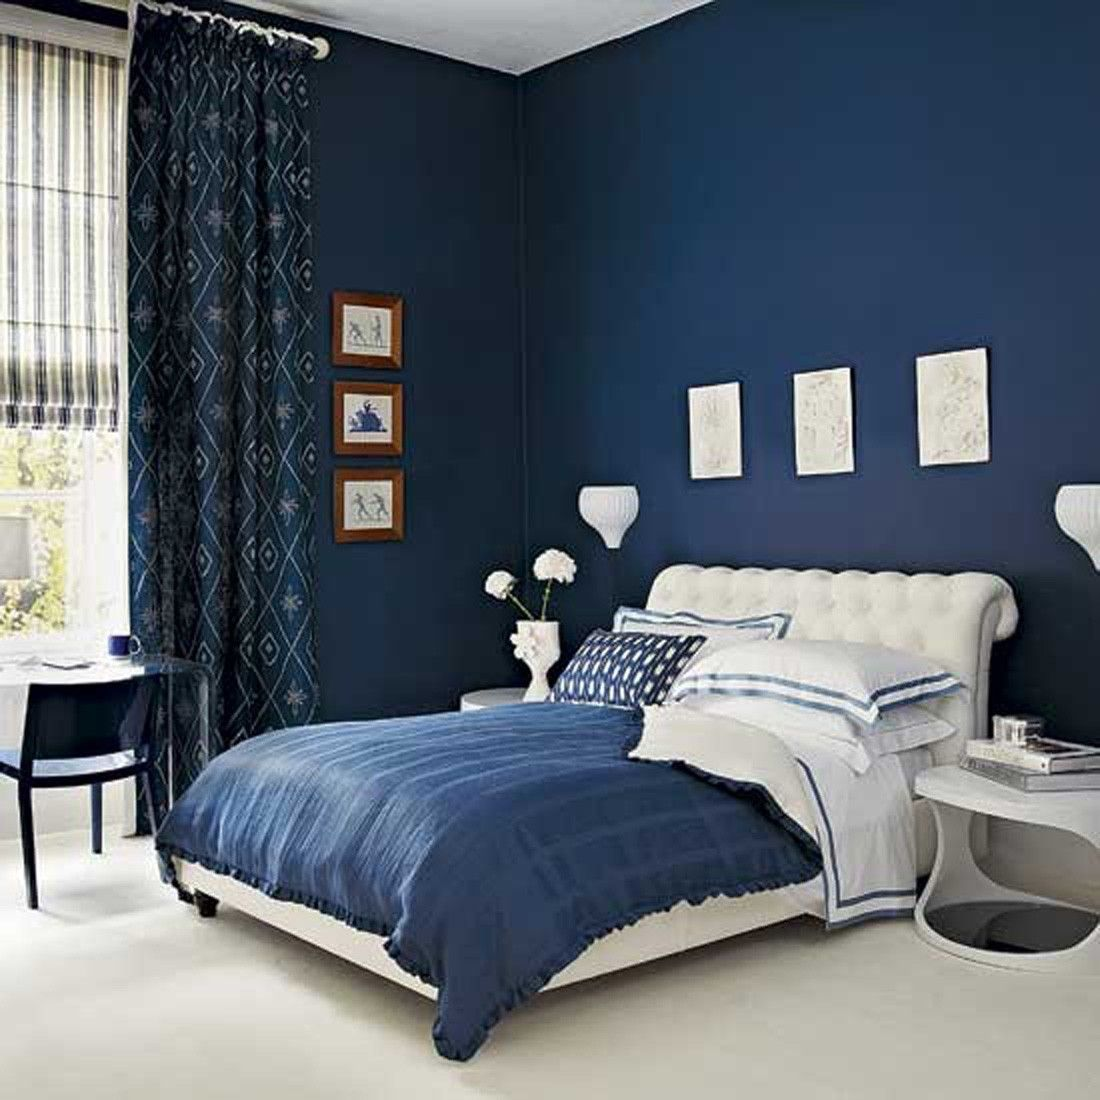 Elegant Design Ideas Of Cute Room Painting With Navy Blue Color Wall Paint And White Tufted Headboard Blue Bedroom Walls Blue Bedroom Decor Blue Master Bedroom